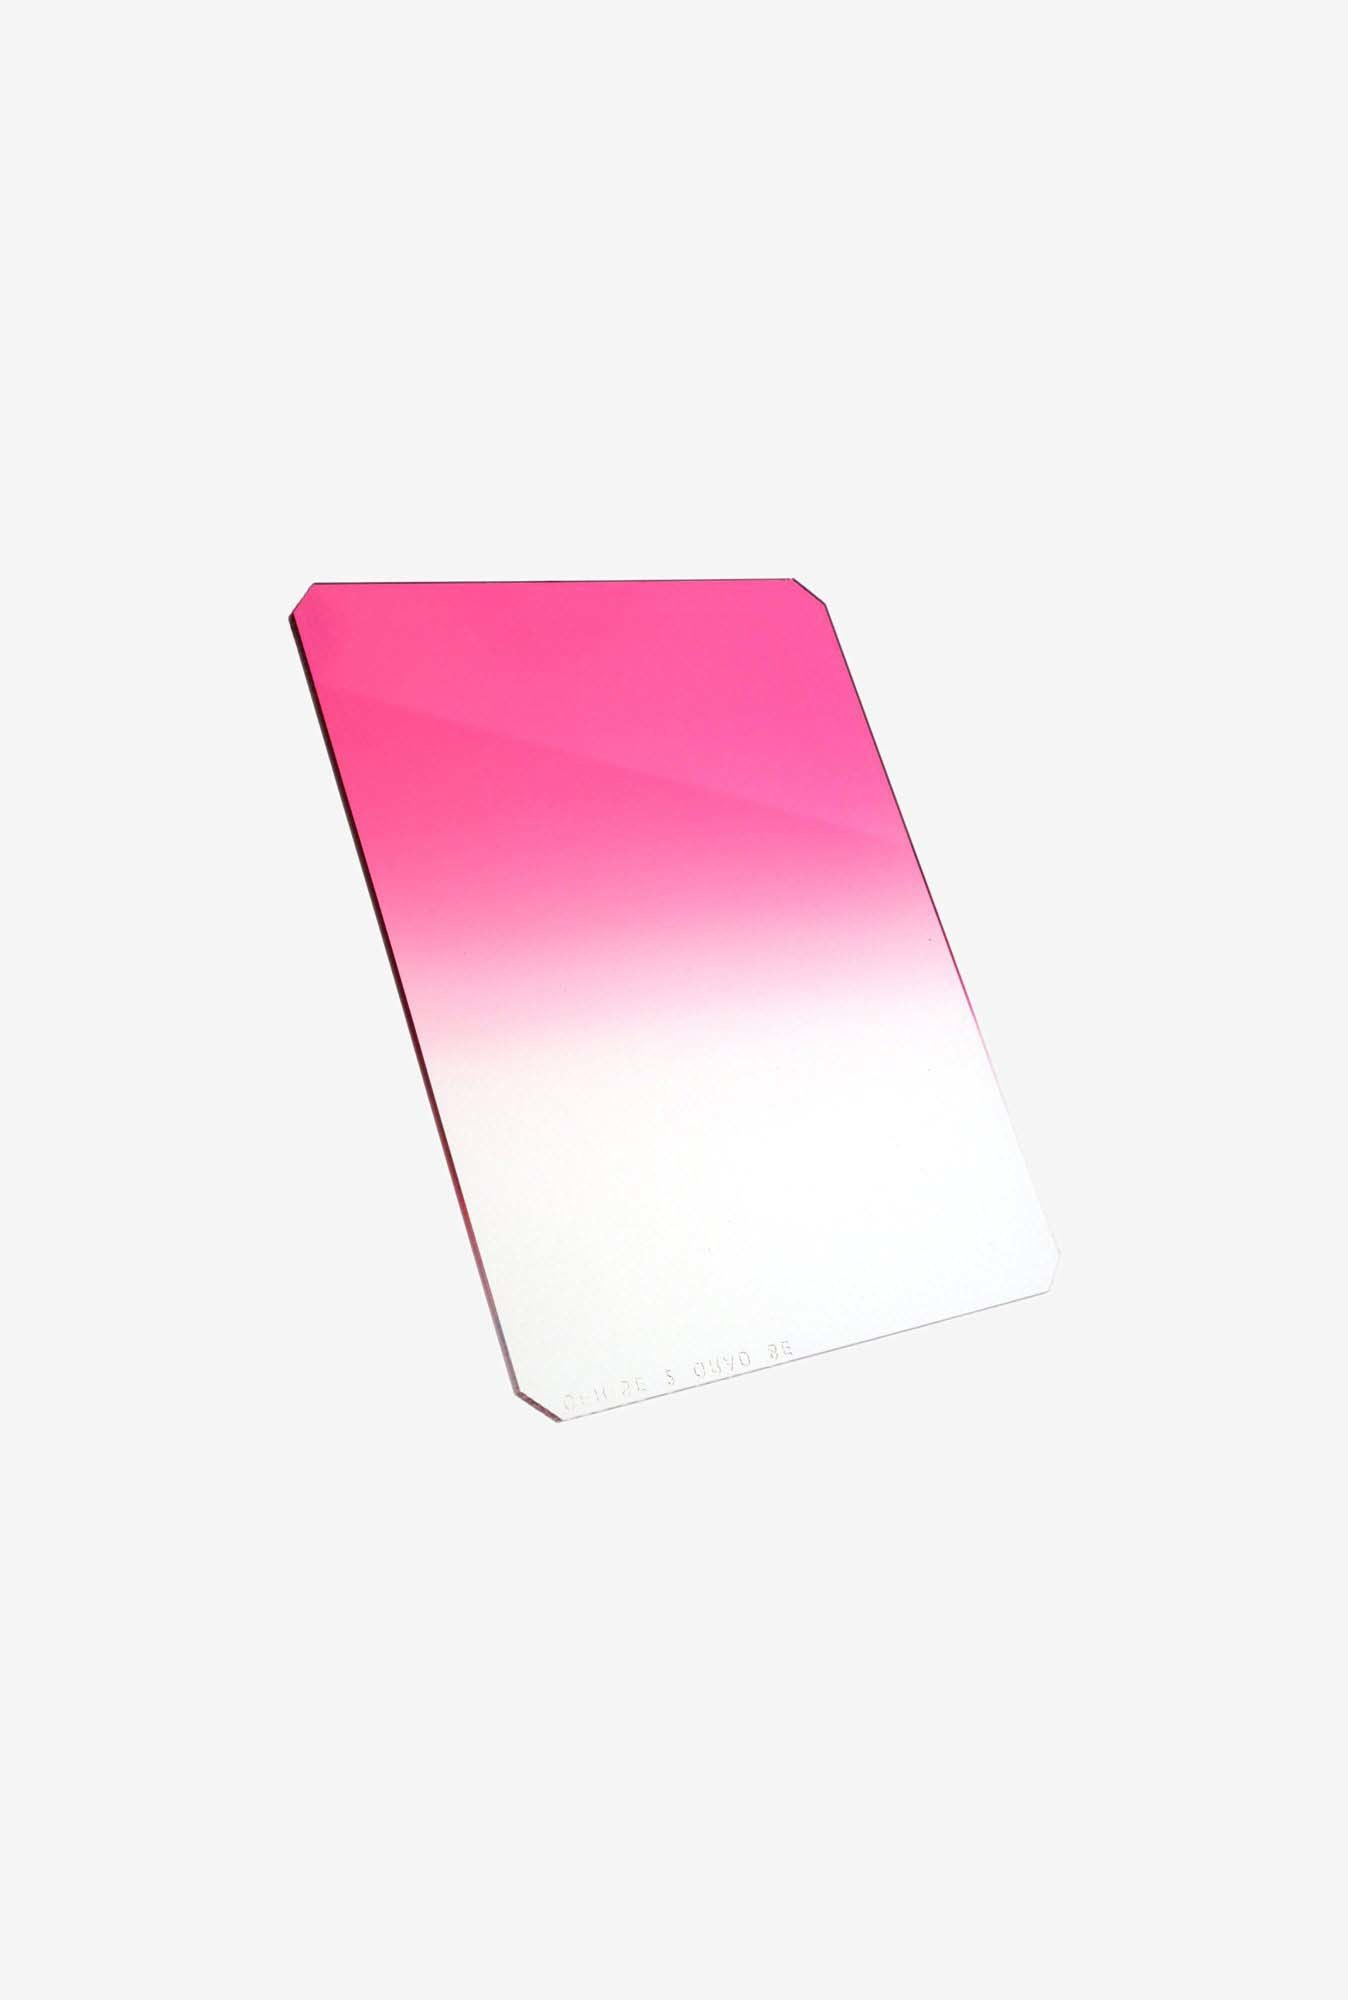 Formatt Hitech 67 x 85mm Hard Edge Filter (Cerise 1)